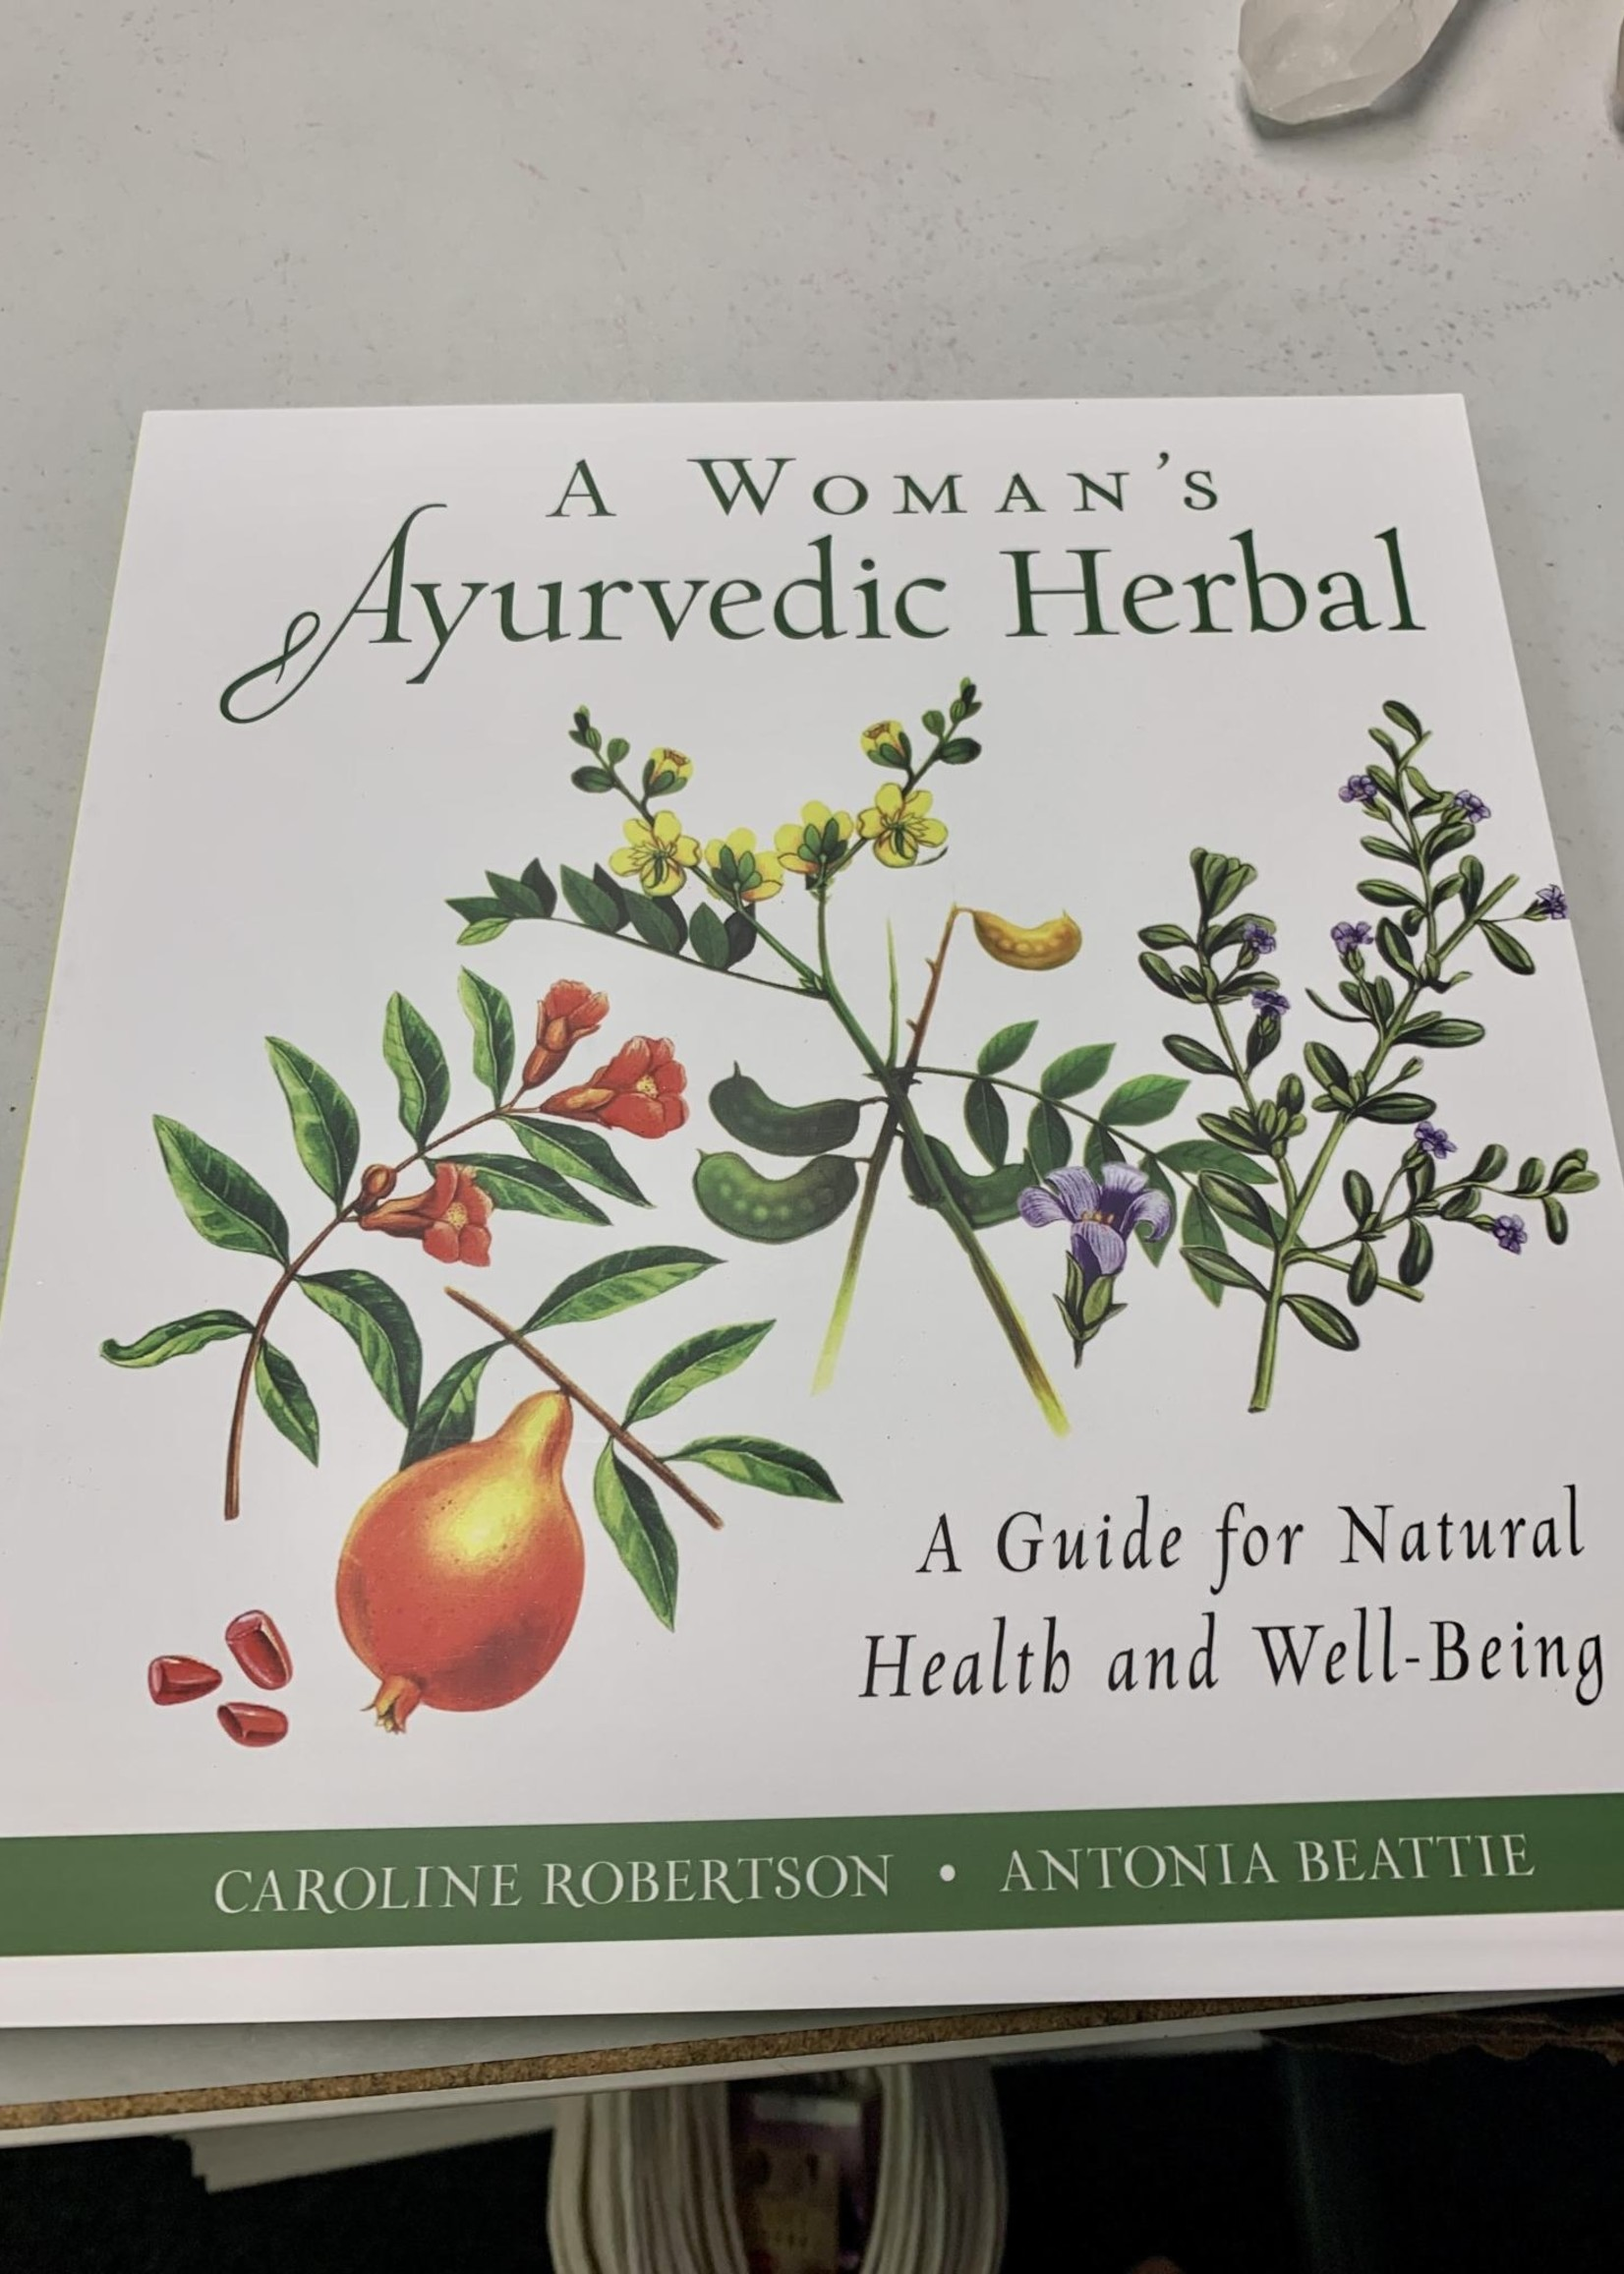 A Woman's Ayurvedic Herbal A Guide for Natural Health and Well-Being - co-author Antonia Beattie, co-author Caroline Robertson